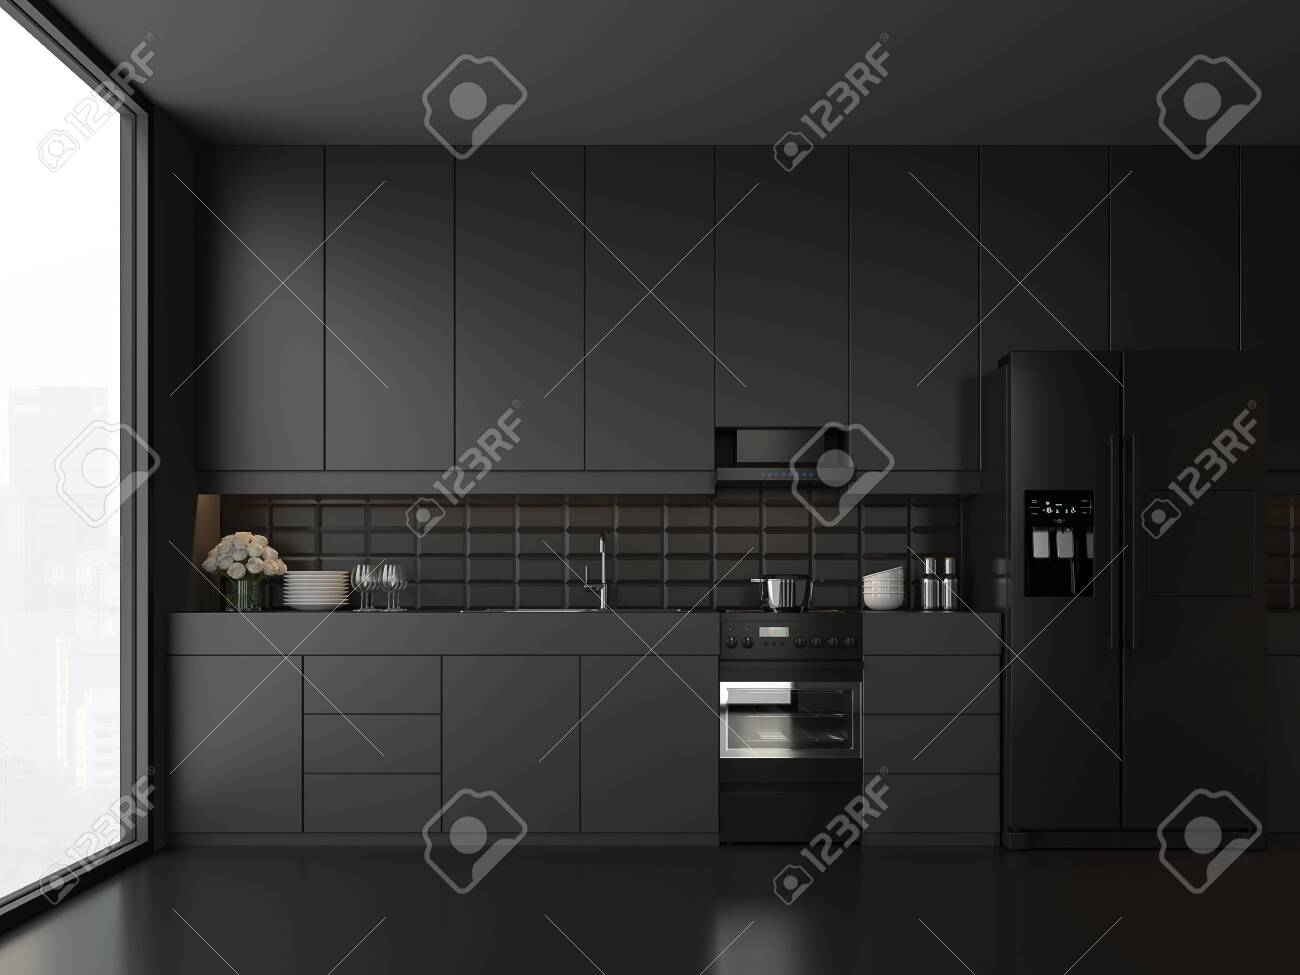 Minimal Style Black Kitchen 3d Render There Are White Floor And Stock Photo Picture And Royalty Free Image Image 123877428